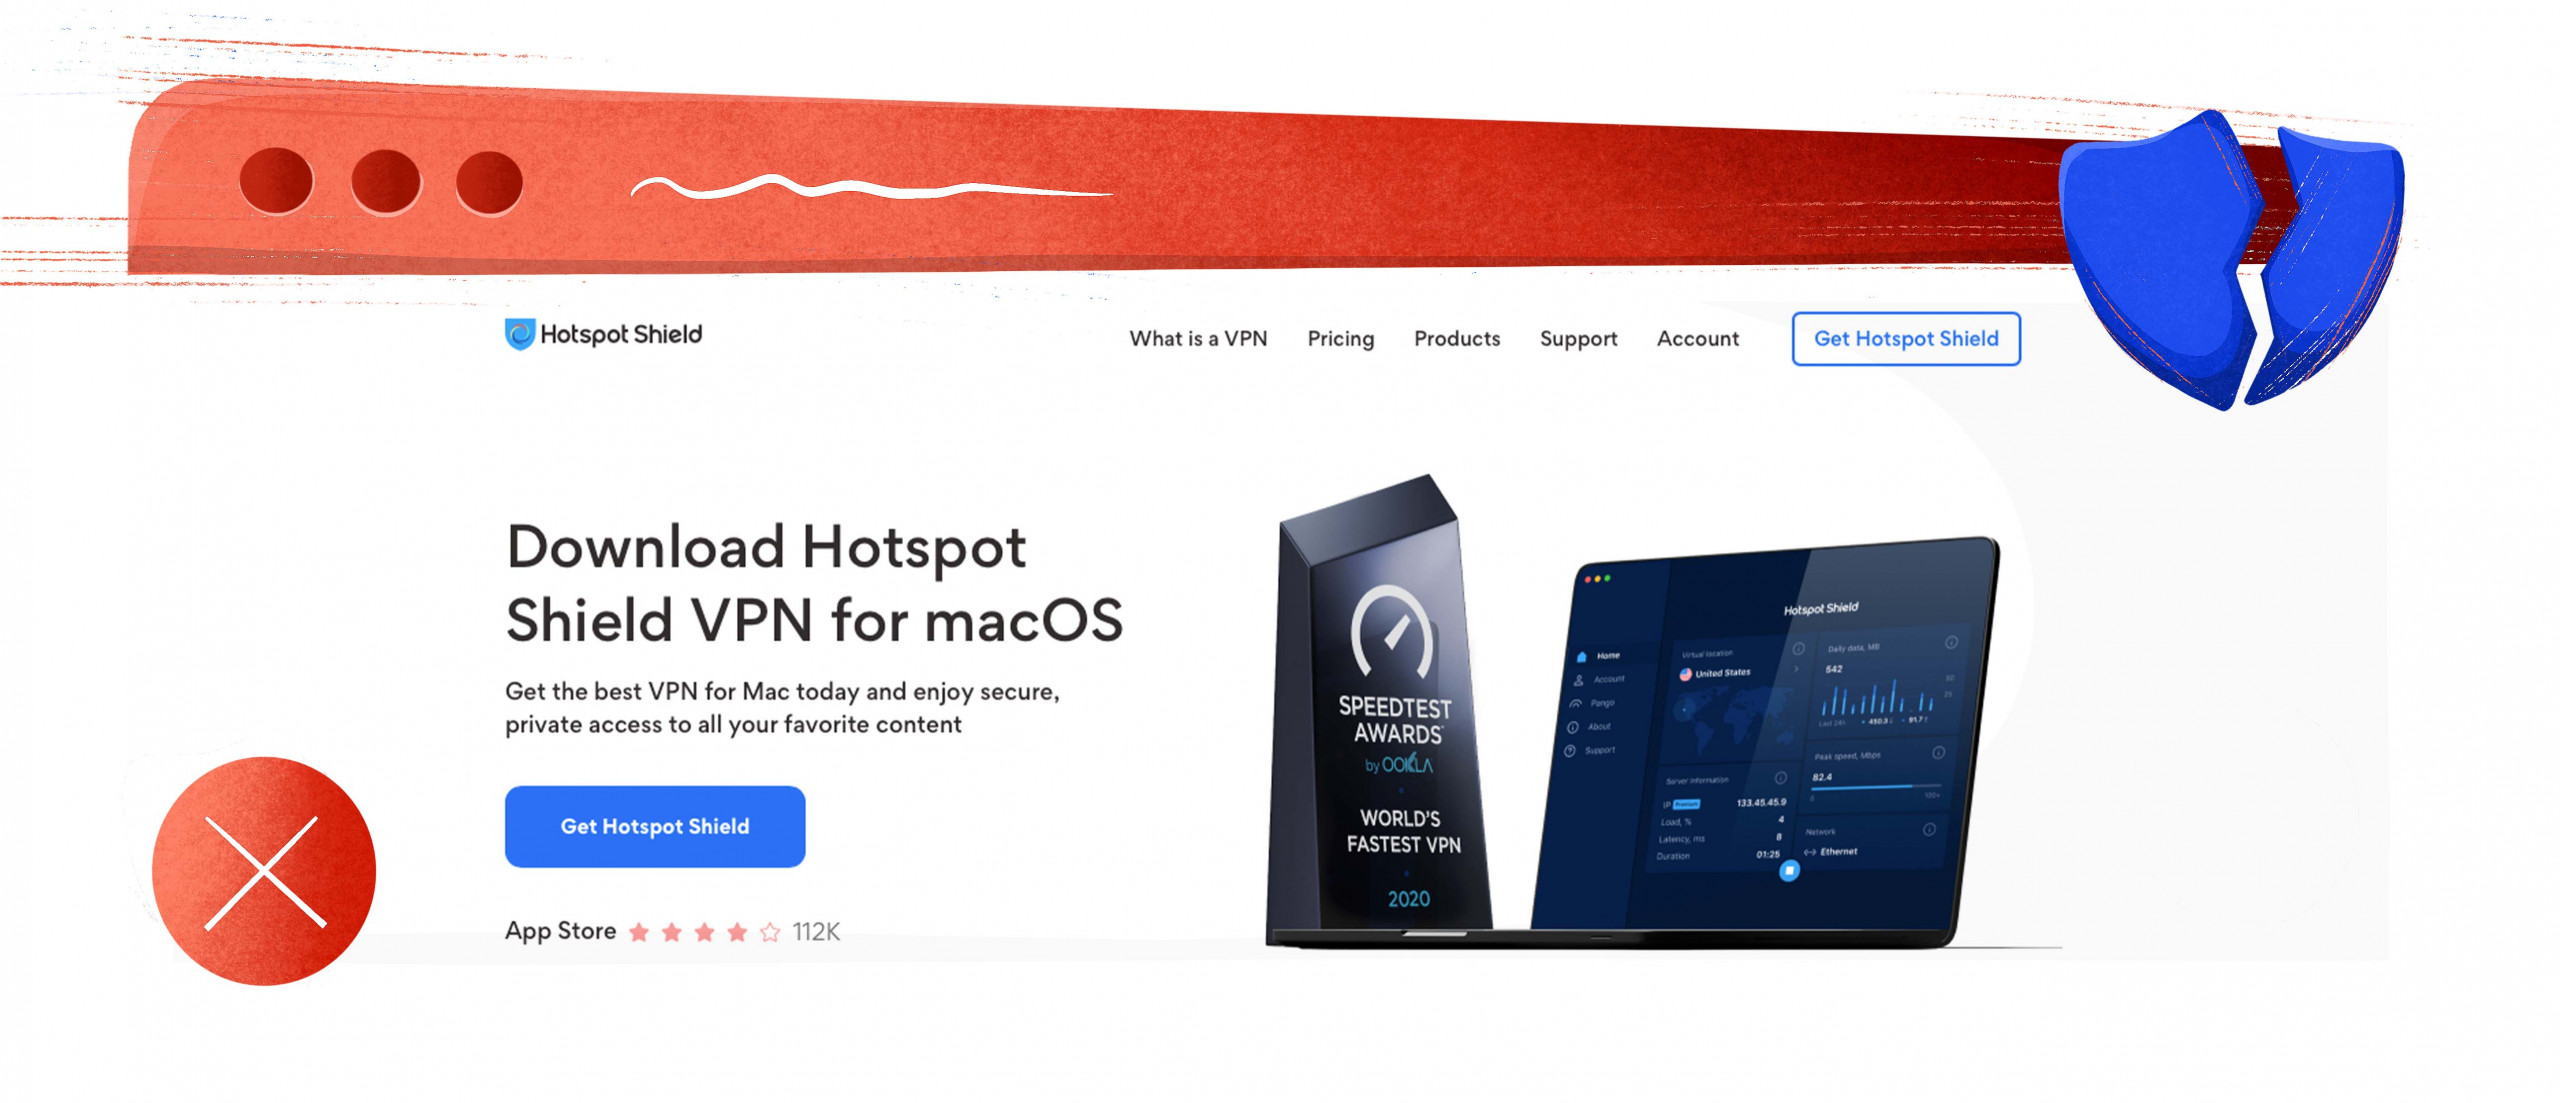 Hotspot Shield leaves bloatware on your computer